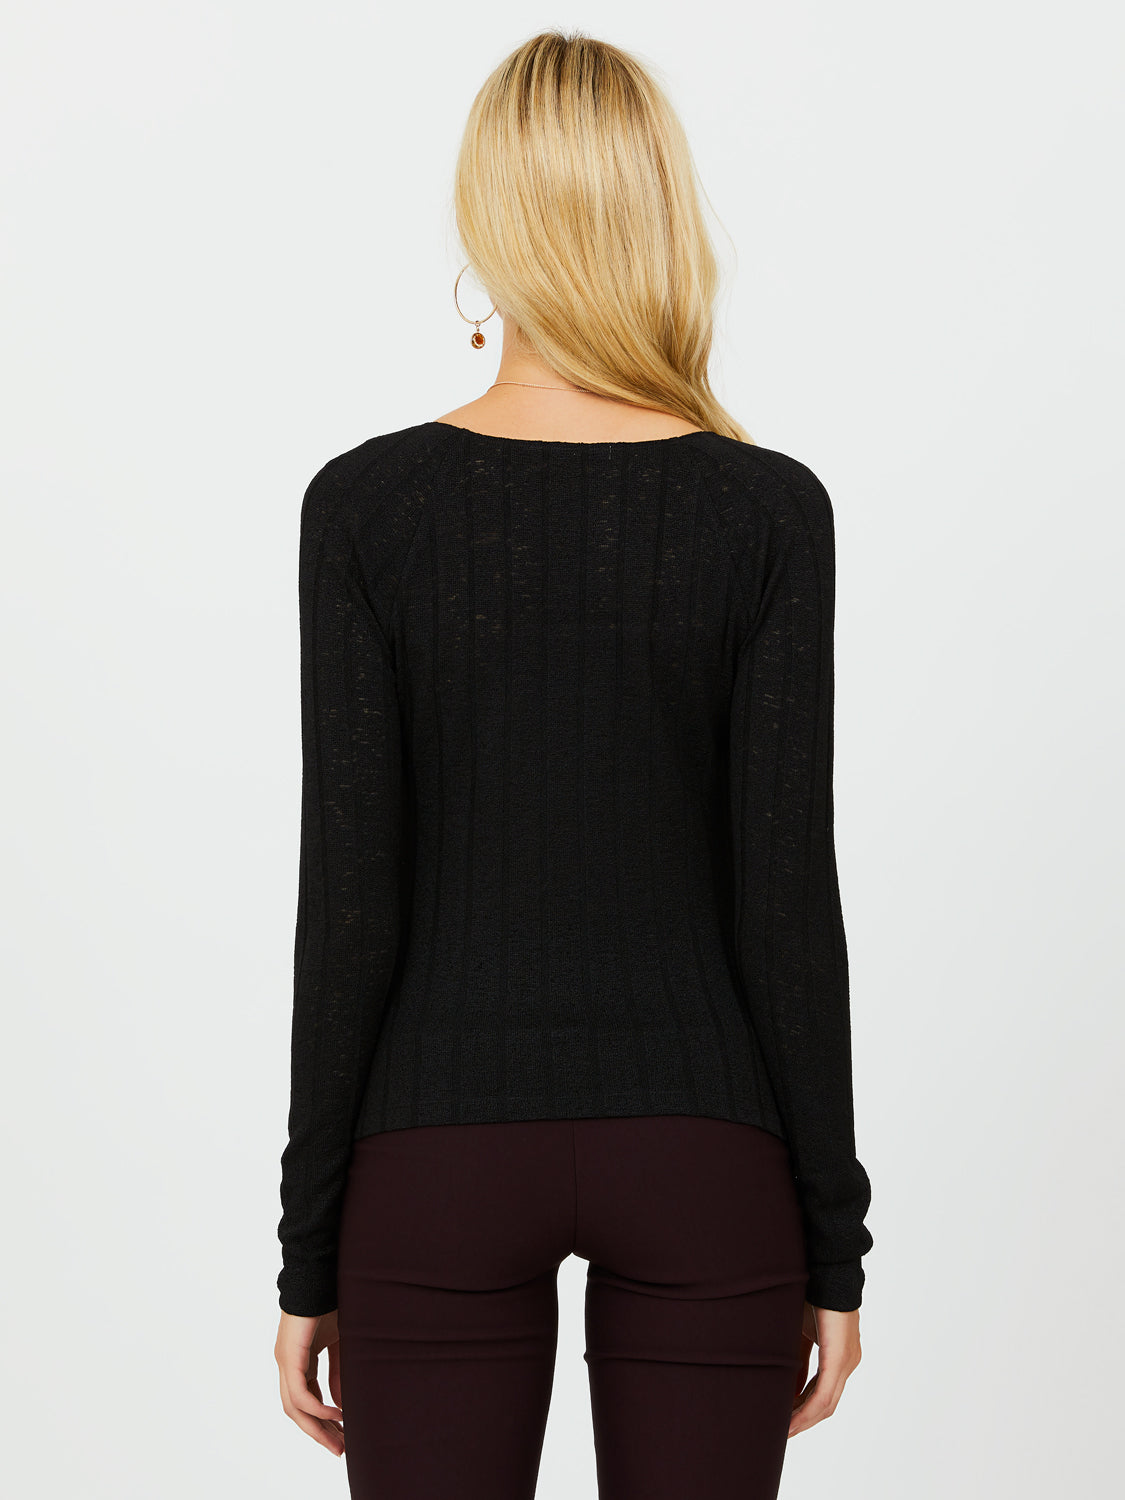 Long Sleeve Square Neckline Top